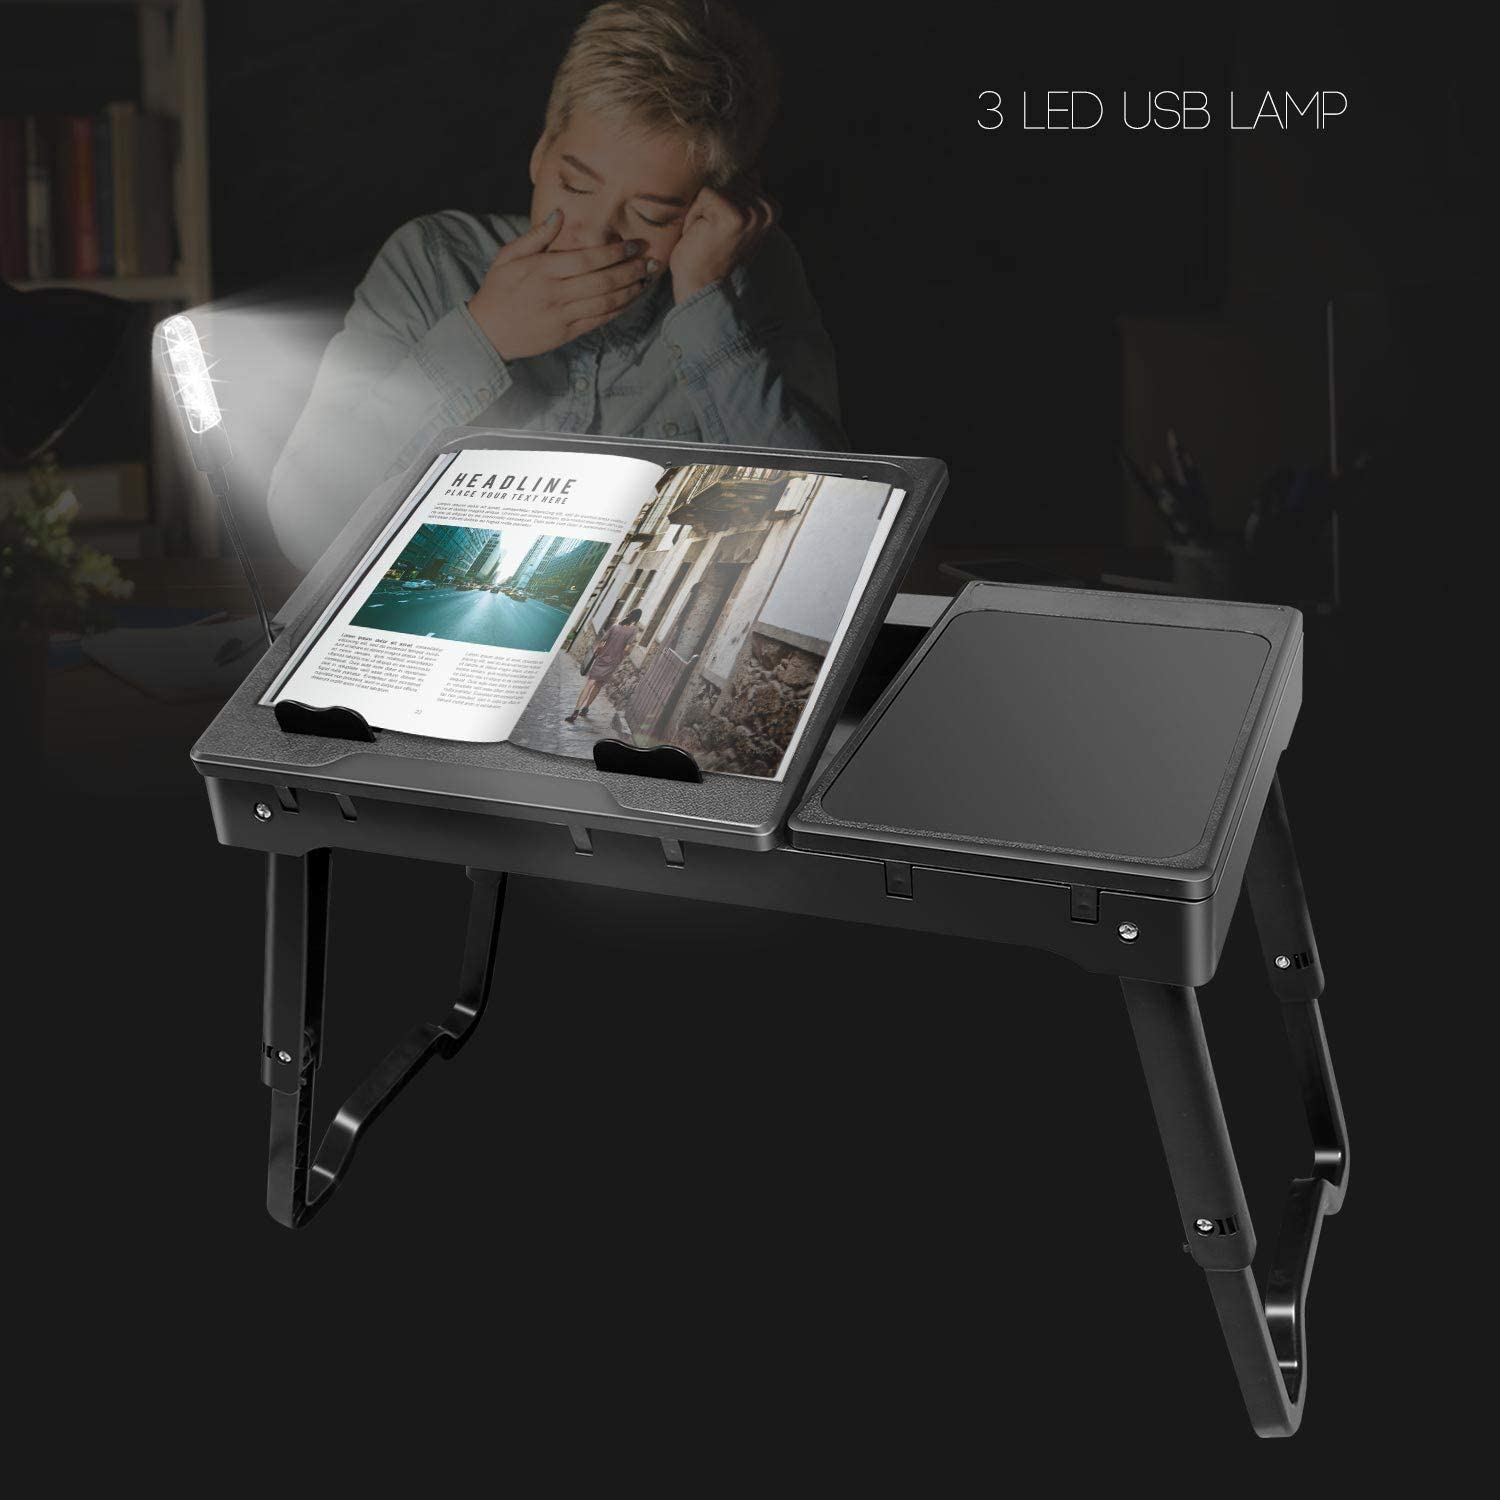 Moclever Laptop Table for Bed-Multi-Functional Laptop Bed Table Tray